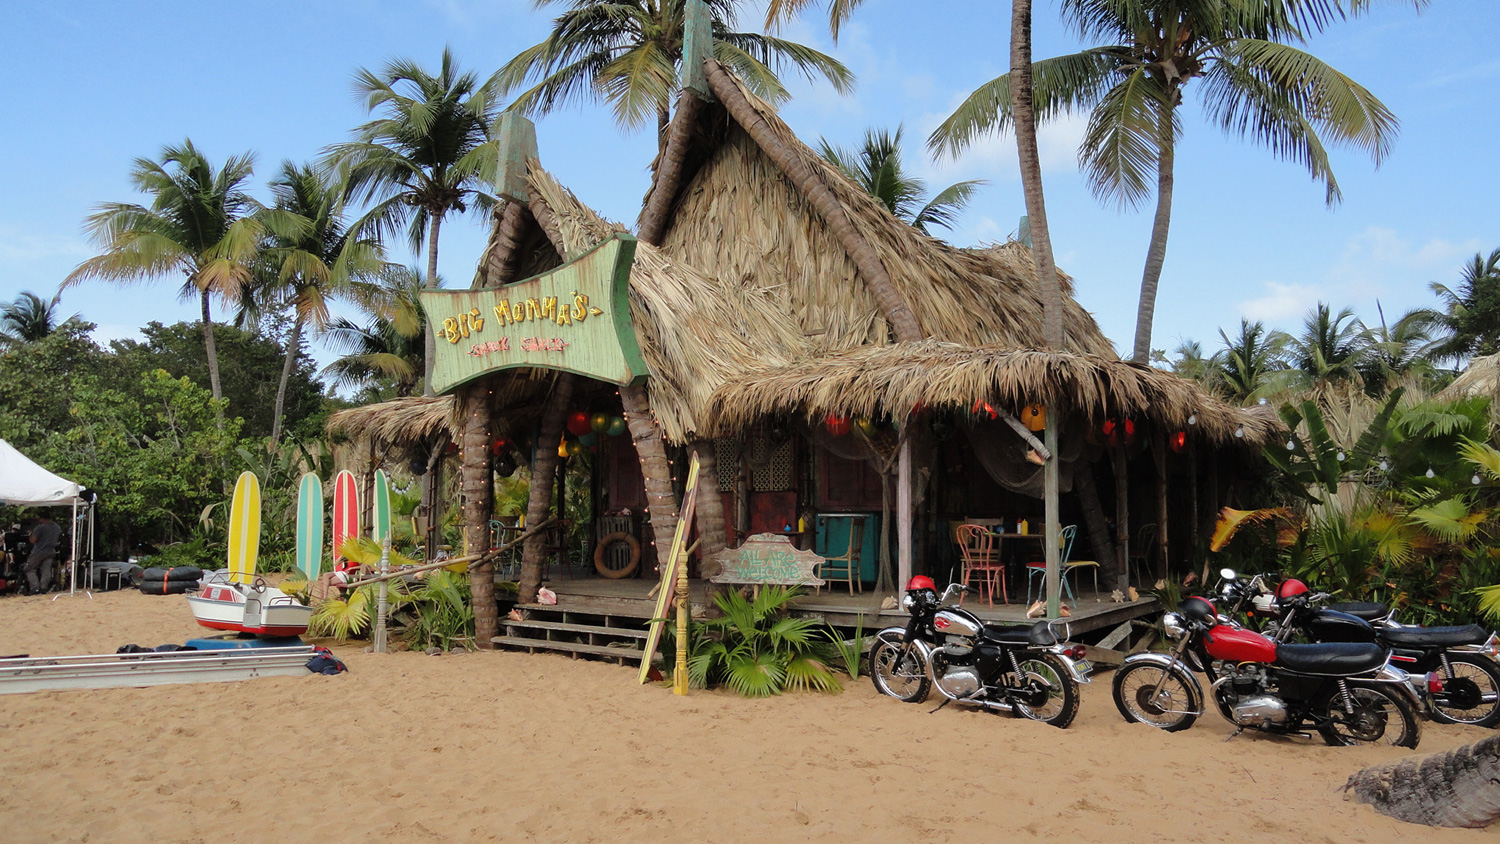 Rival gangs of surfers and bikers compete for control of Big Momma's snack shack. We built this Polynesian inspired beach hut on a gorgeous cove in eastern Puerto Rico.